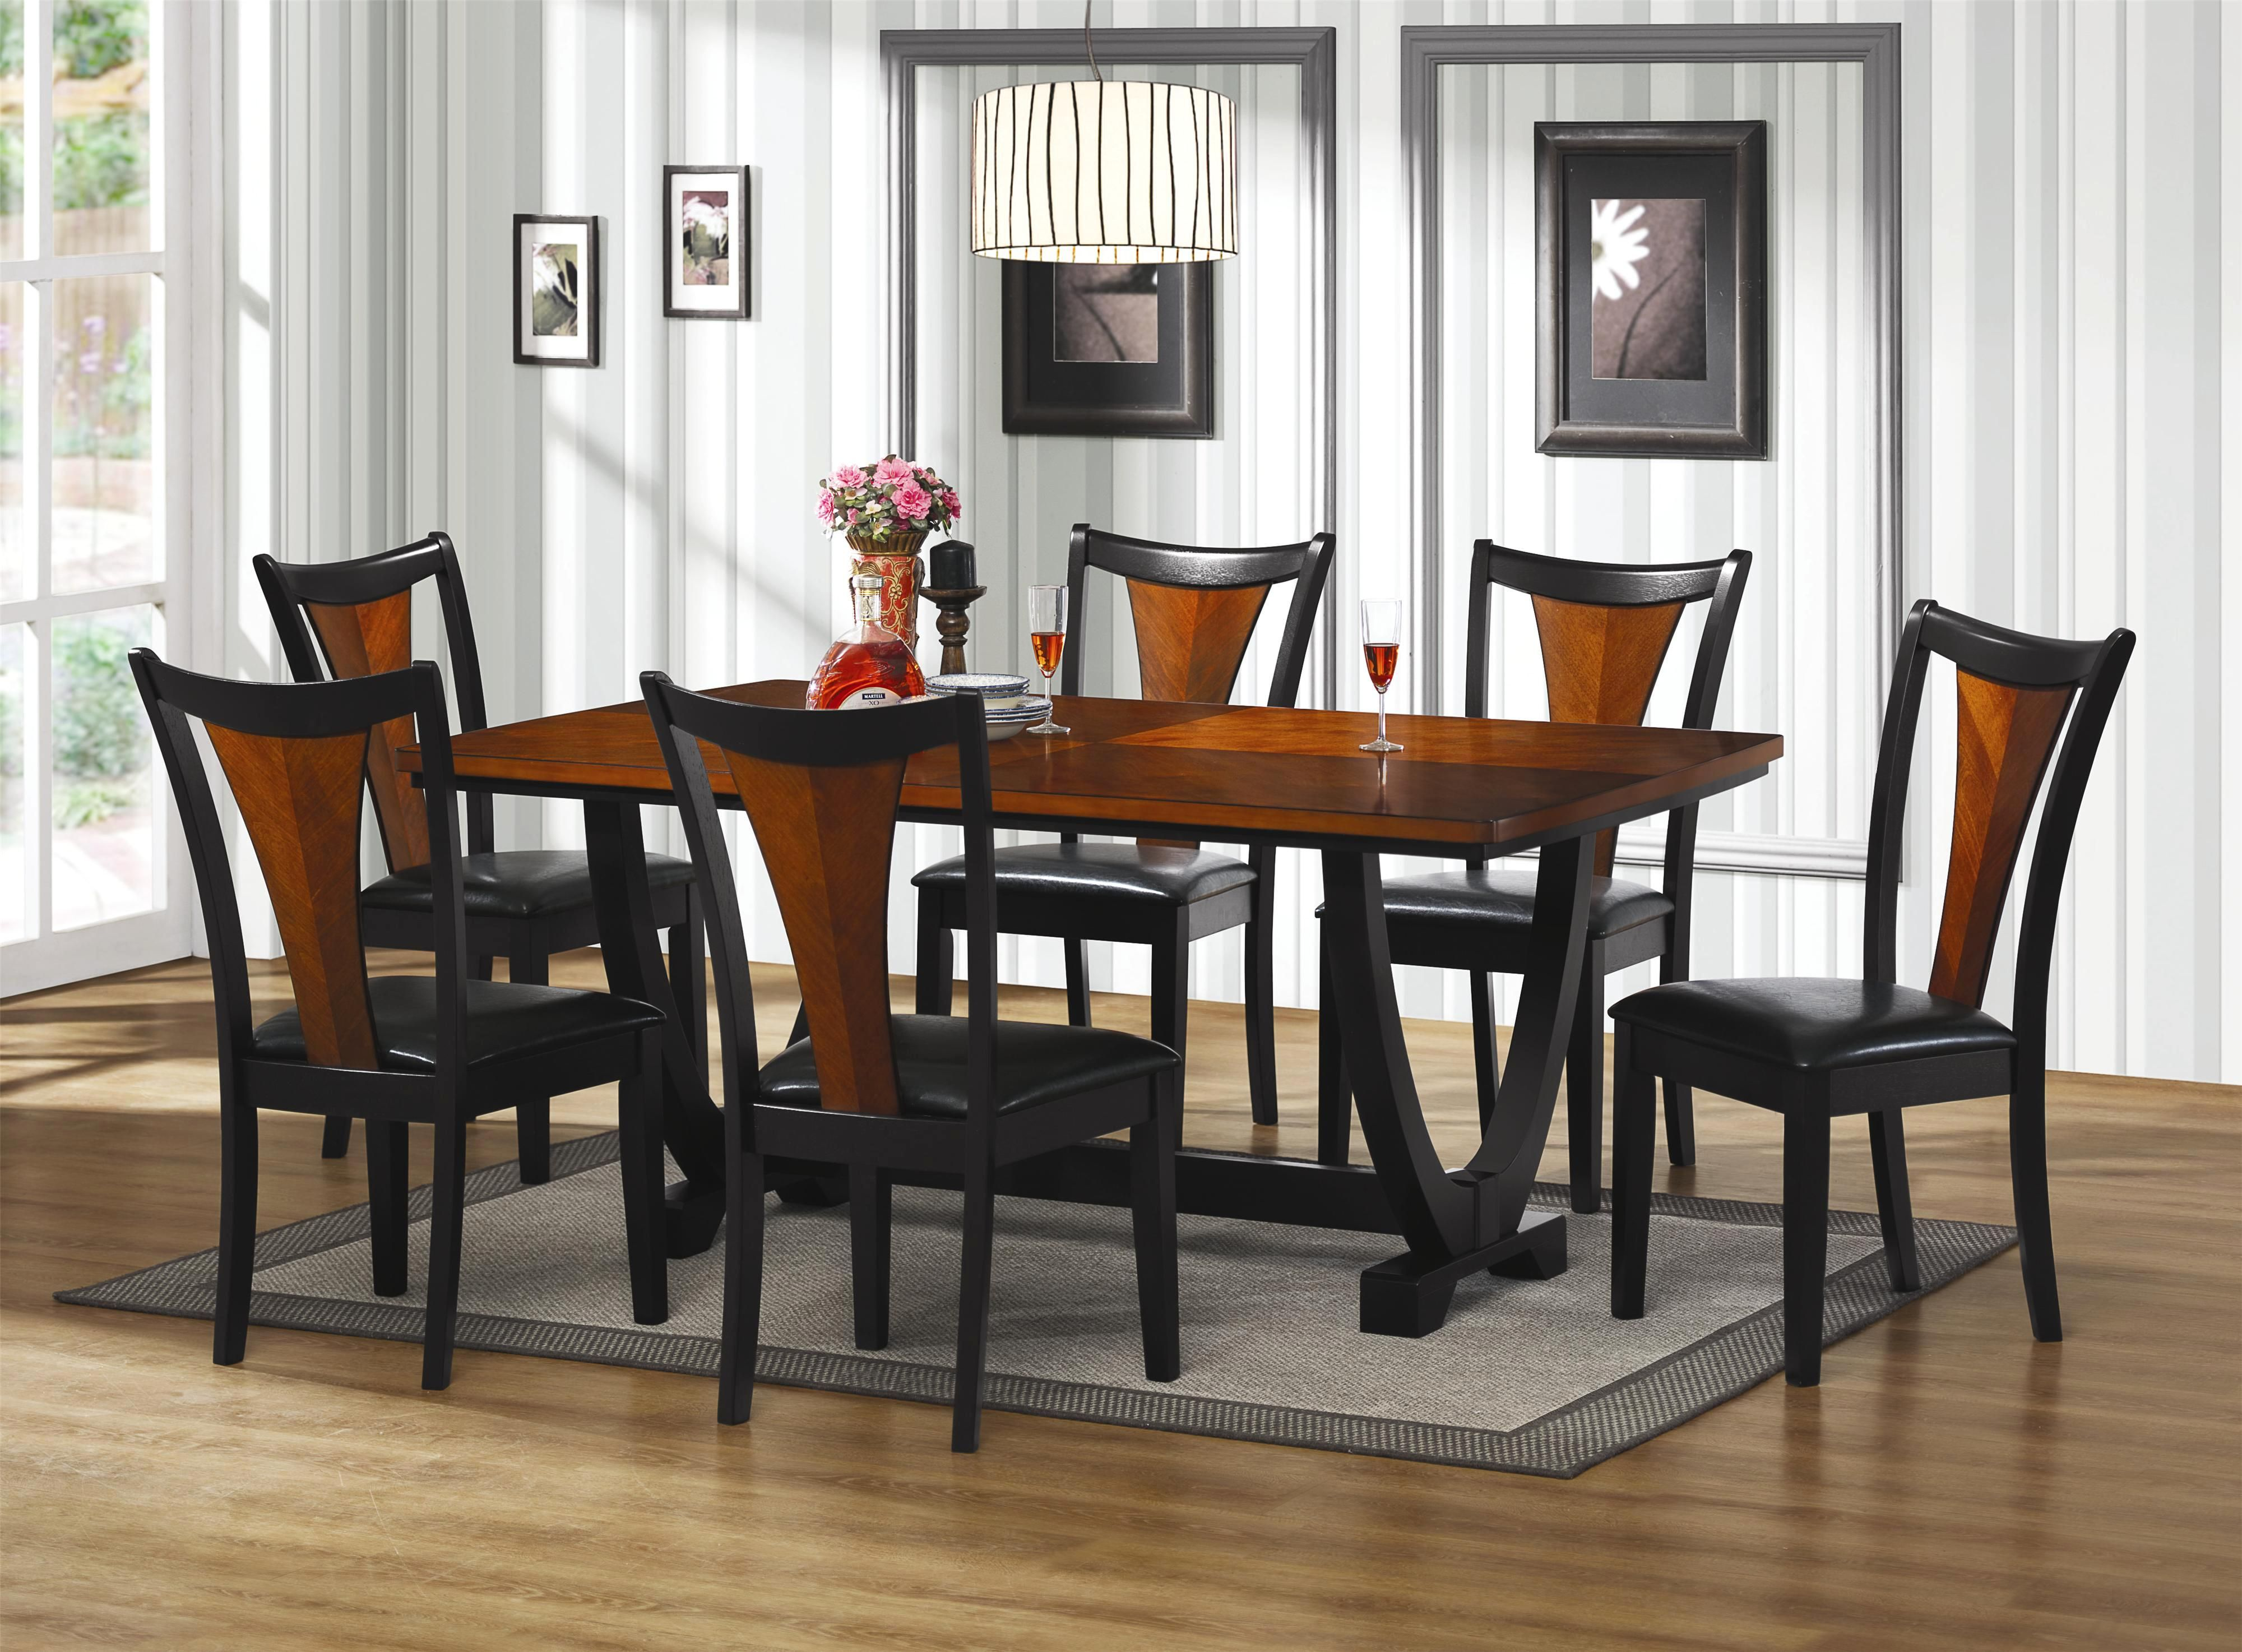 Pine dining room set pine dining room sets overstock com pine dining room furniture pottery barn dining room set savings pine dining room furniture